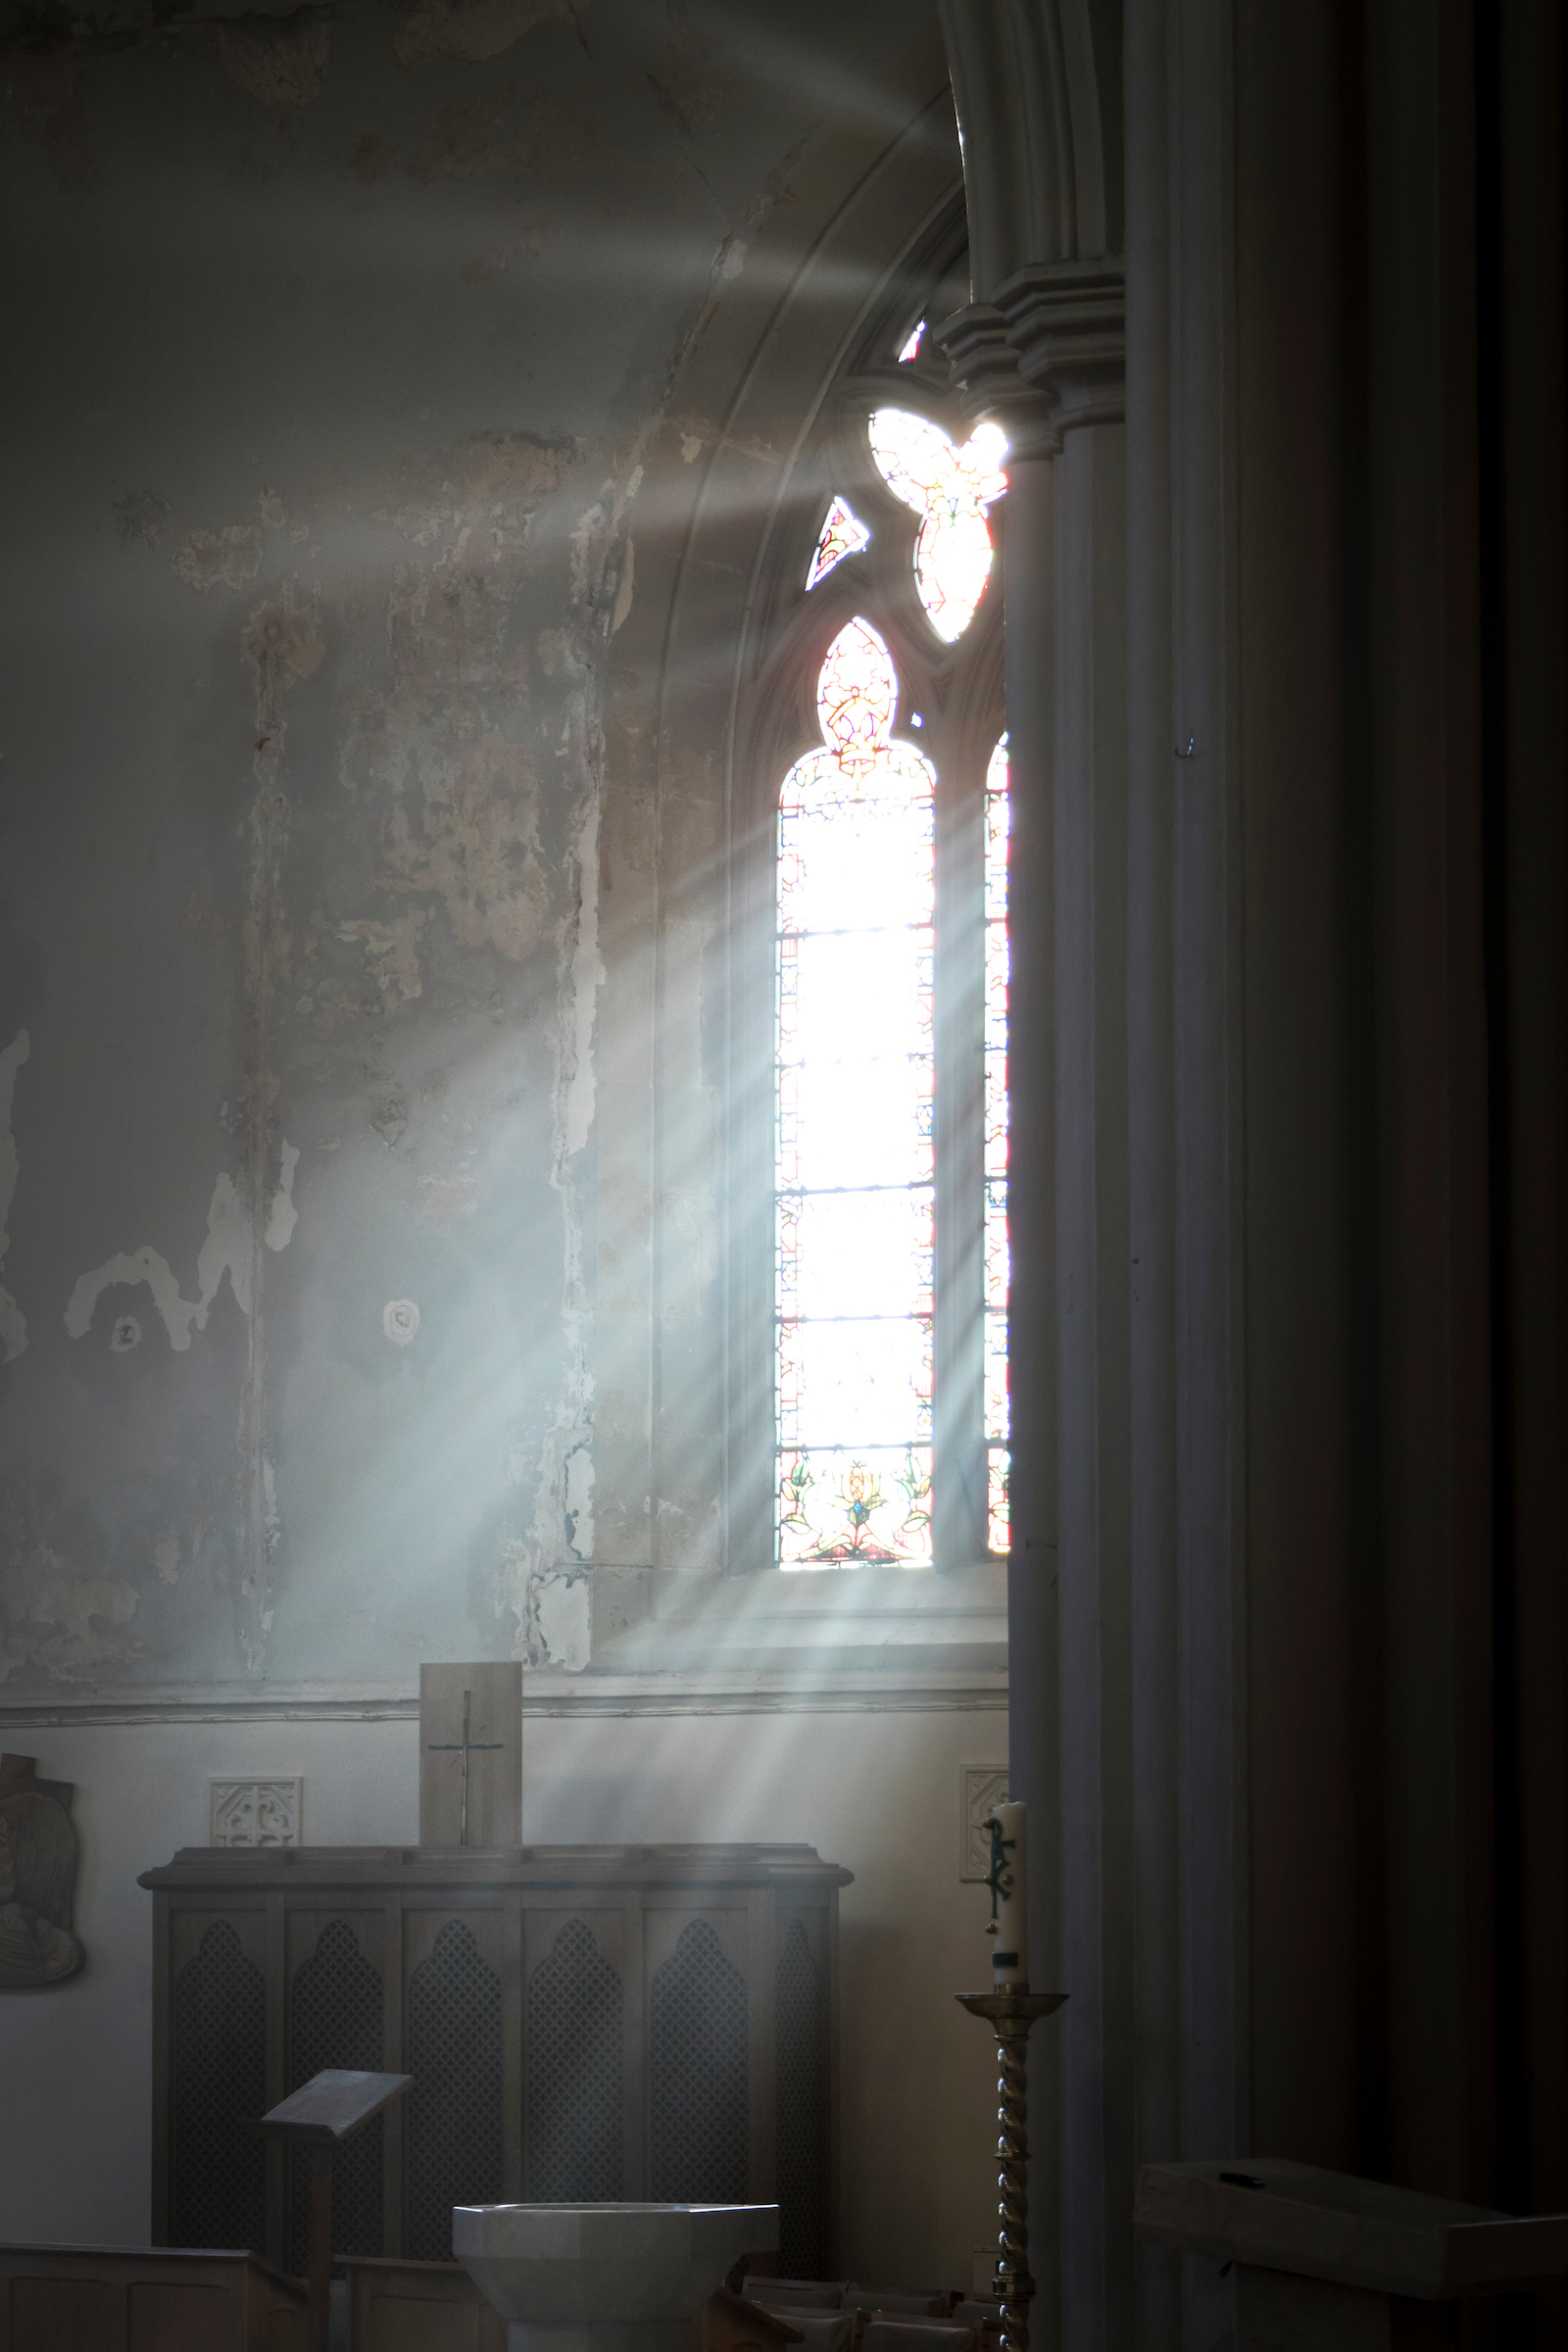 A Photograph showing A wonderful view of the sun shining through the side window pouring light into the cathedral